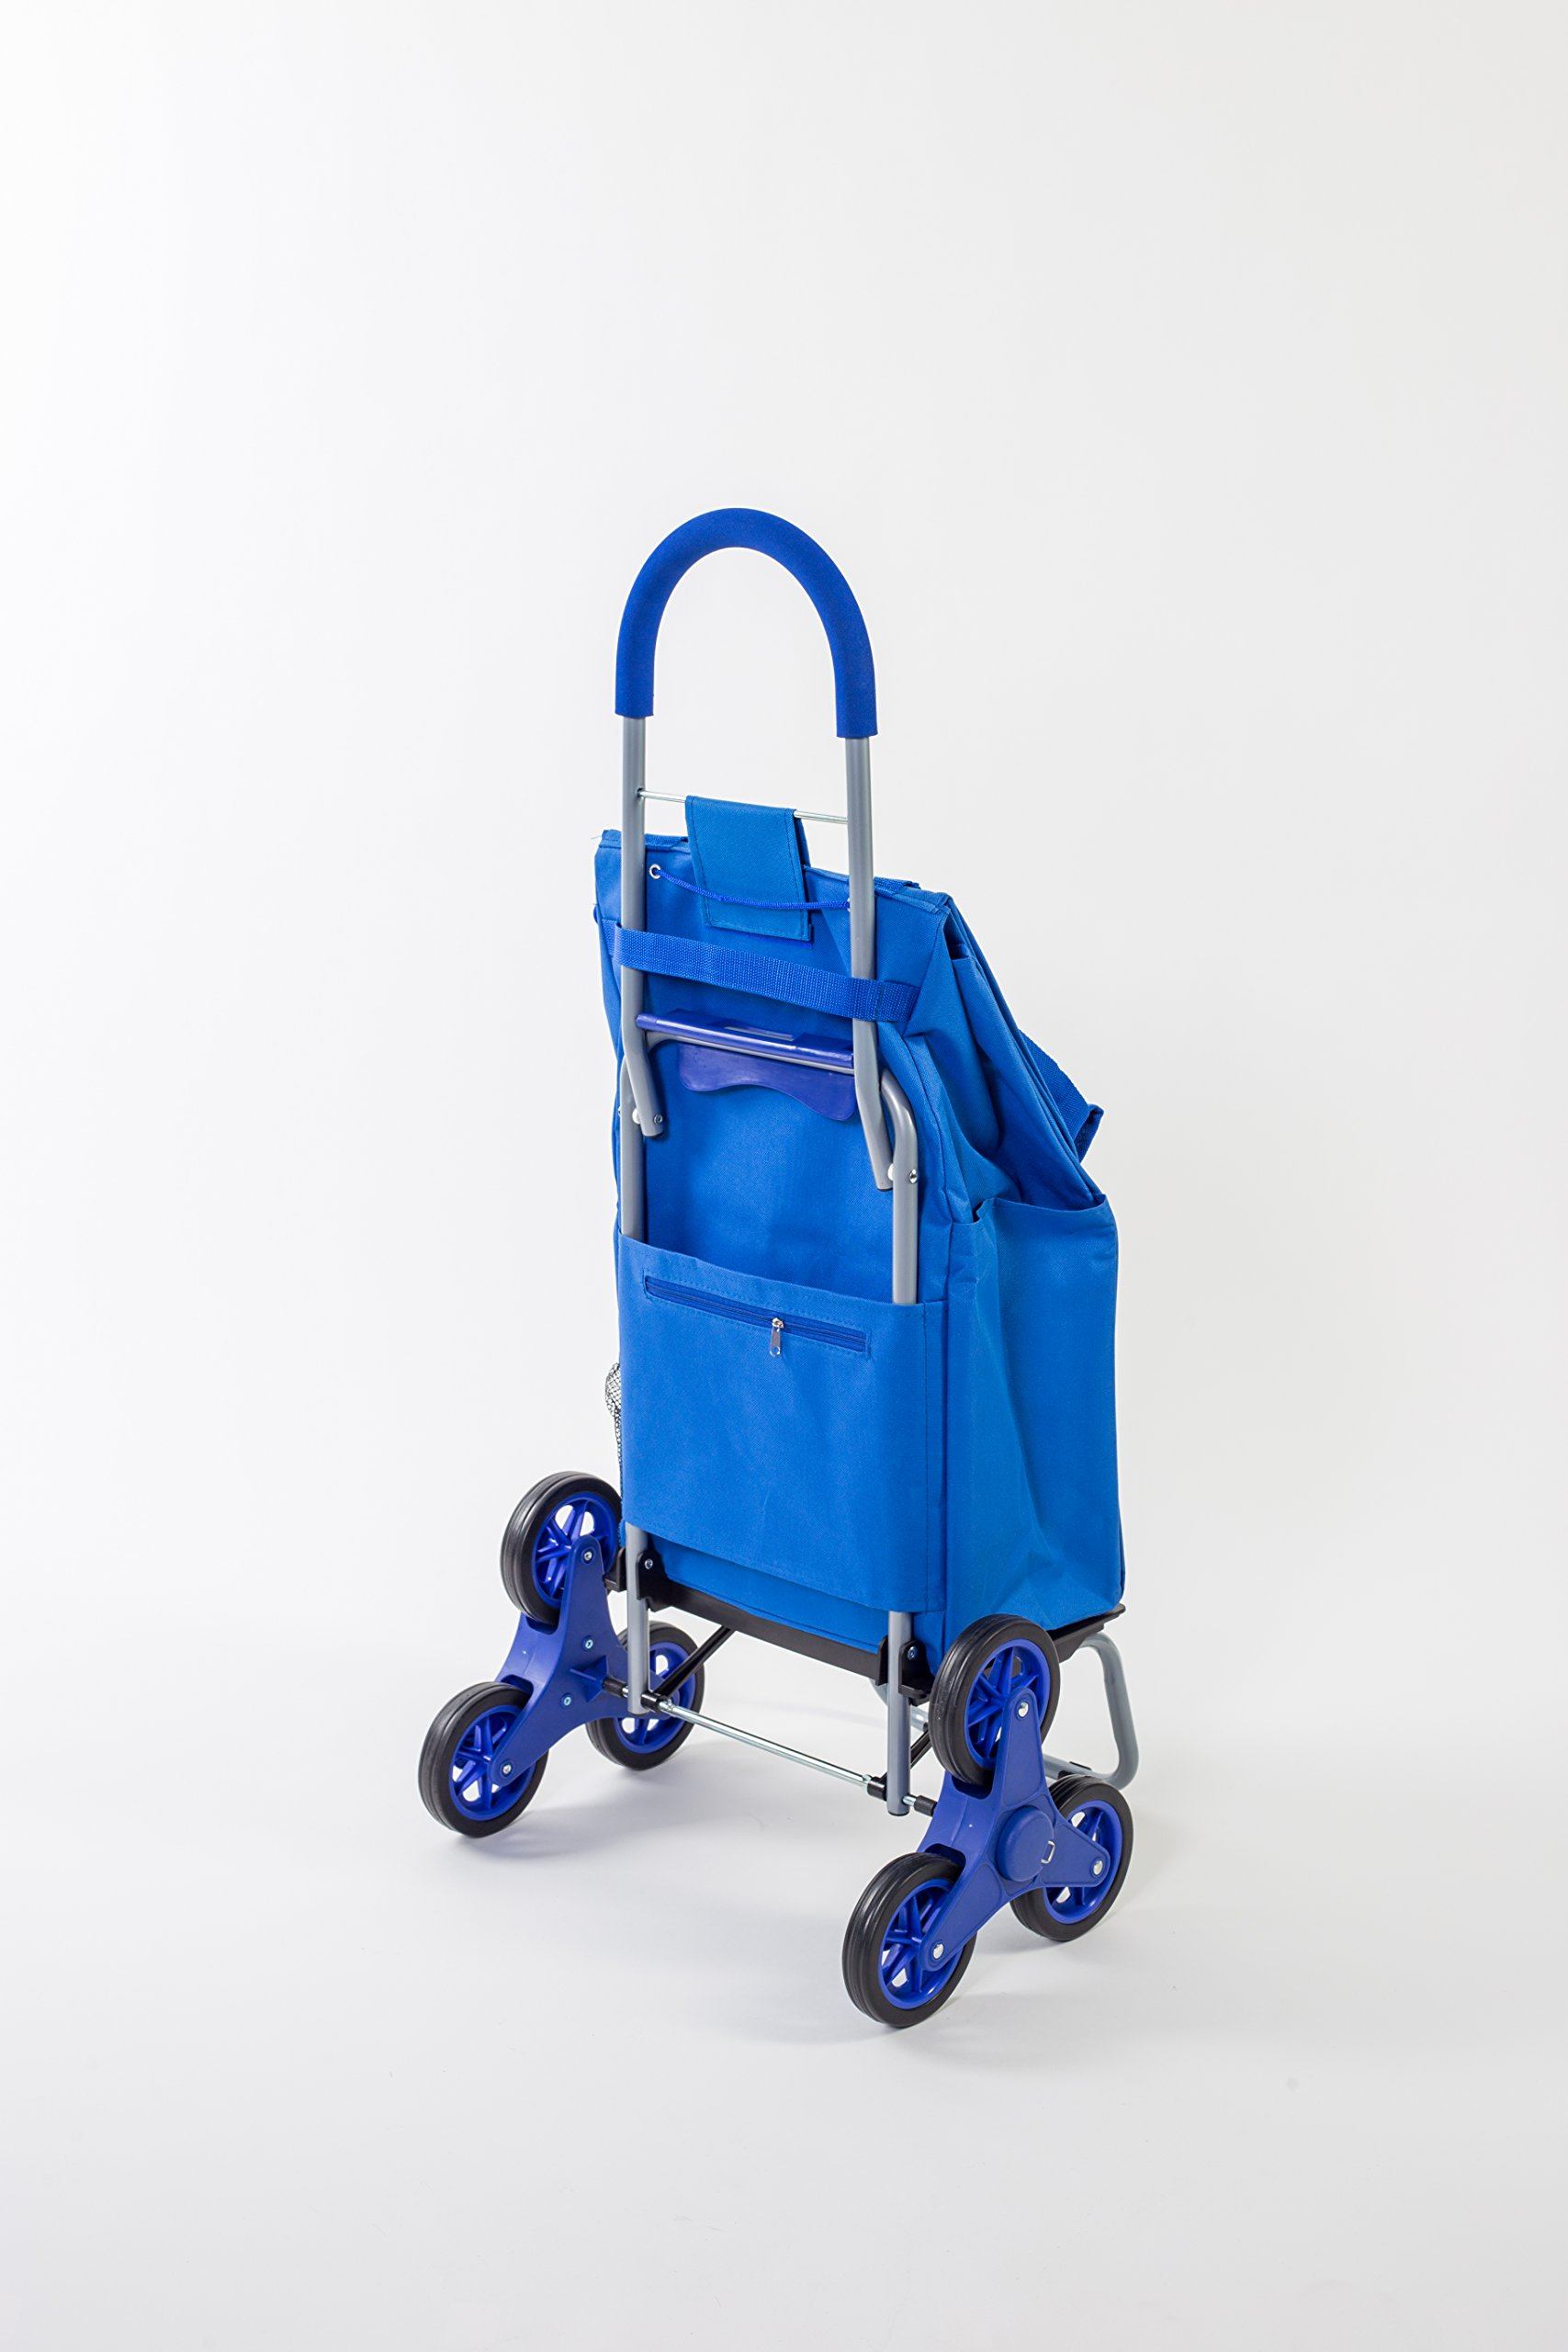 dbest products Stair Climber Trolley Dolly, Blue Shopping Grocery Foldable Cart Condo Apartment by dbest products (Image #2)